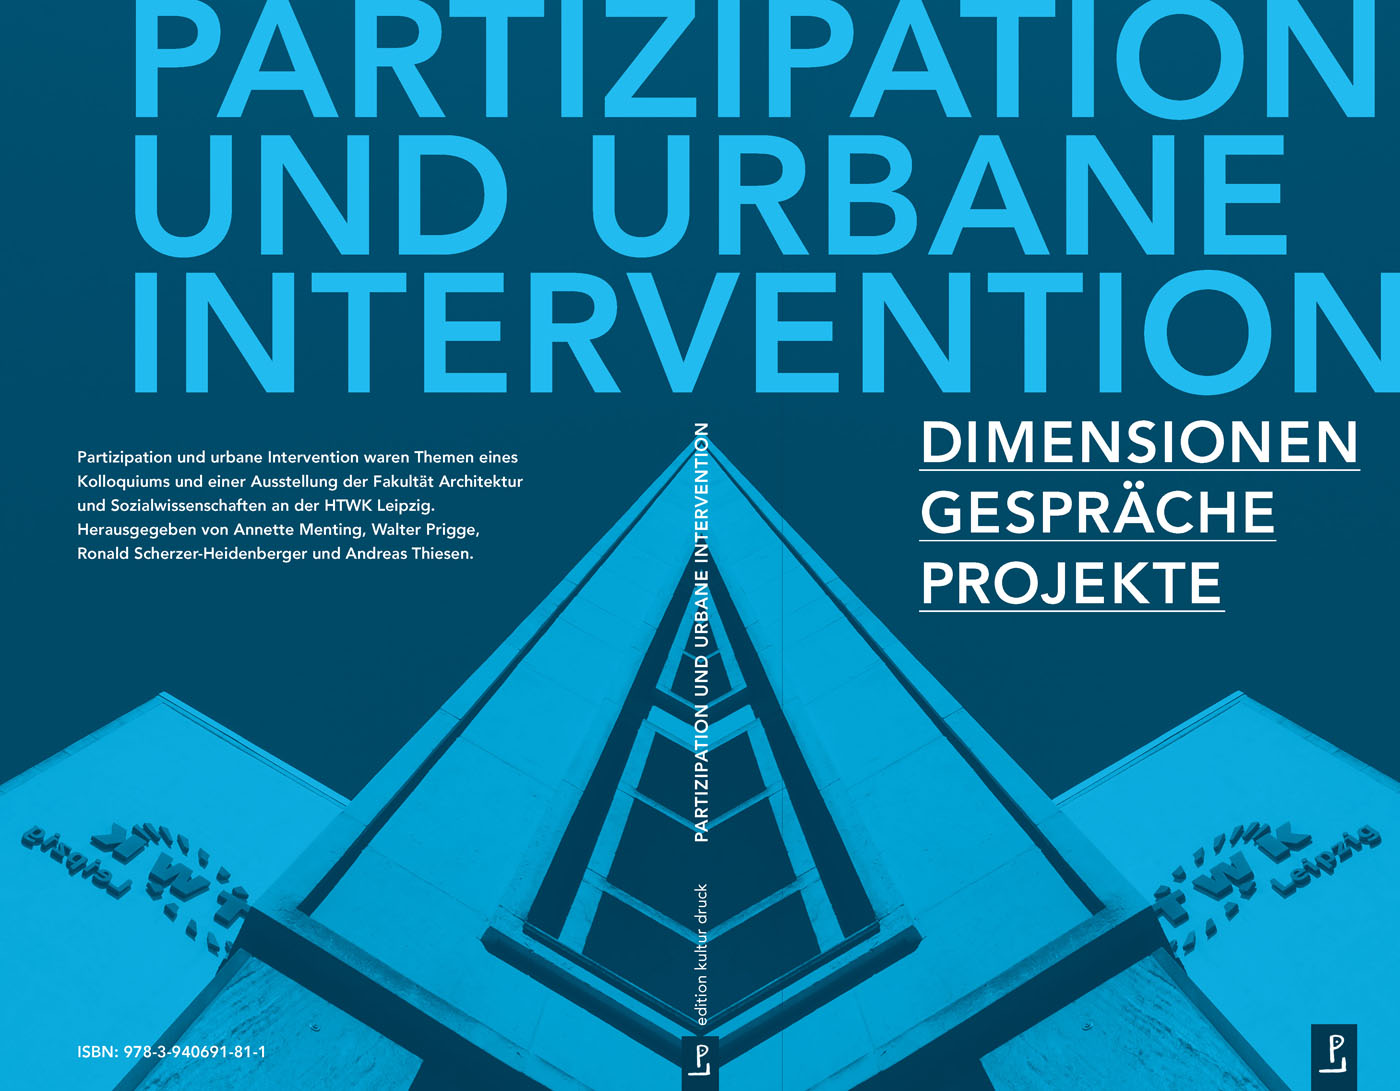 »Partizipation und urbane Intervention« Dimensionen / Gespräche / Projekte